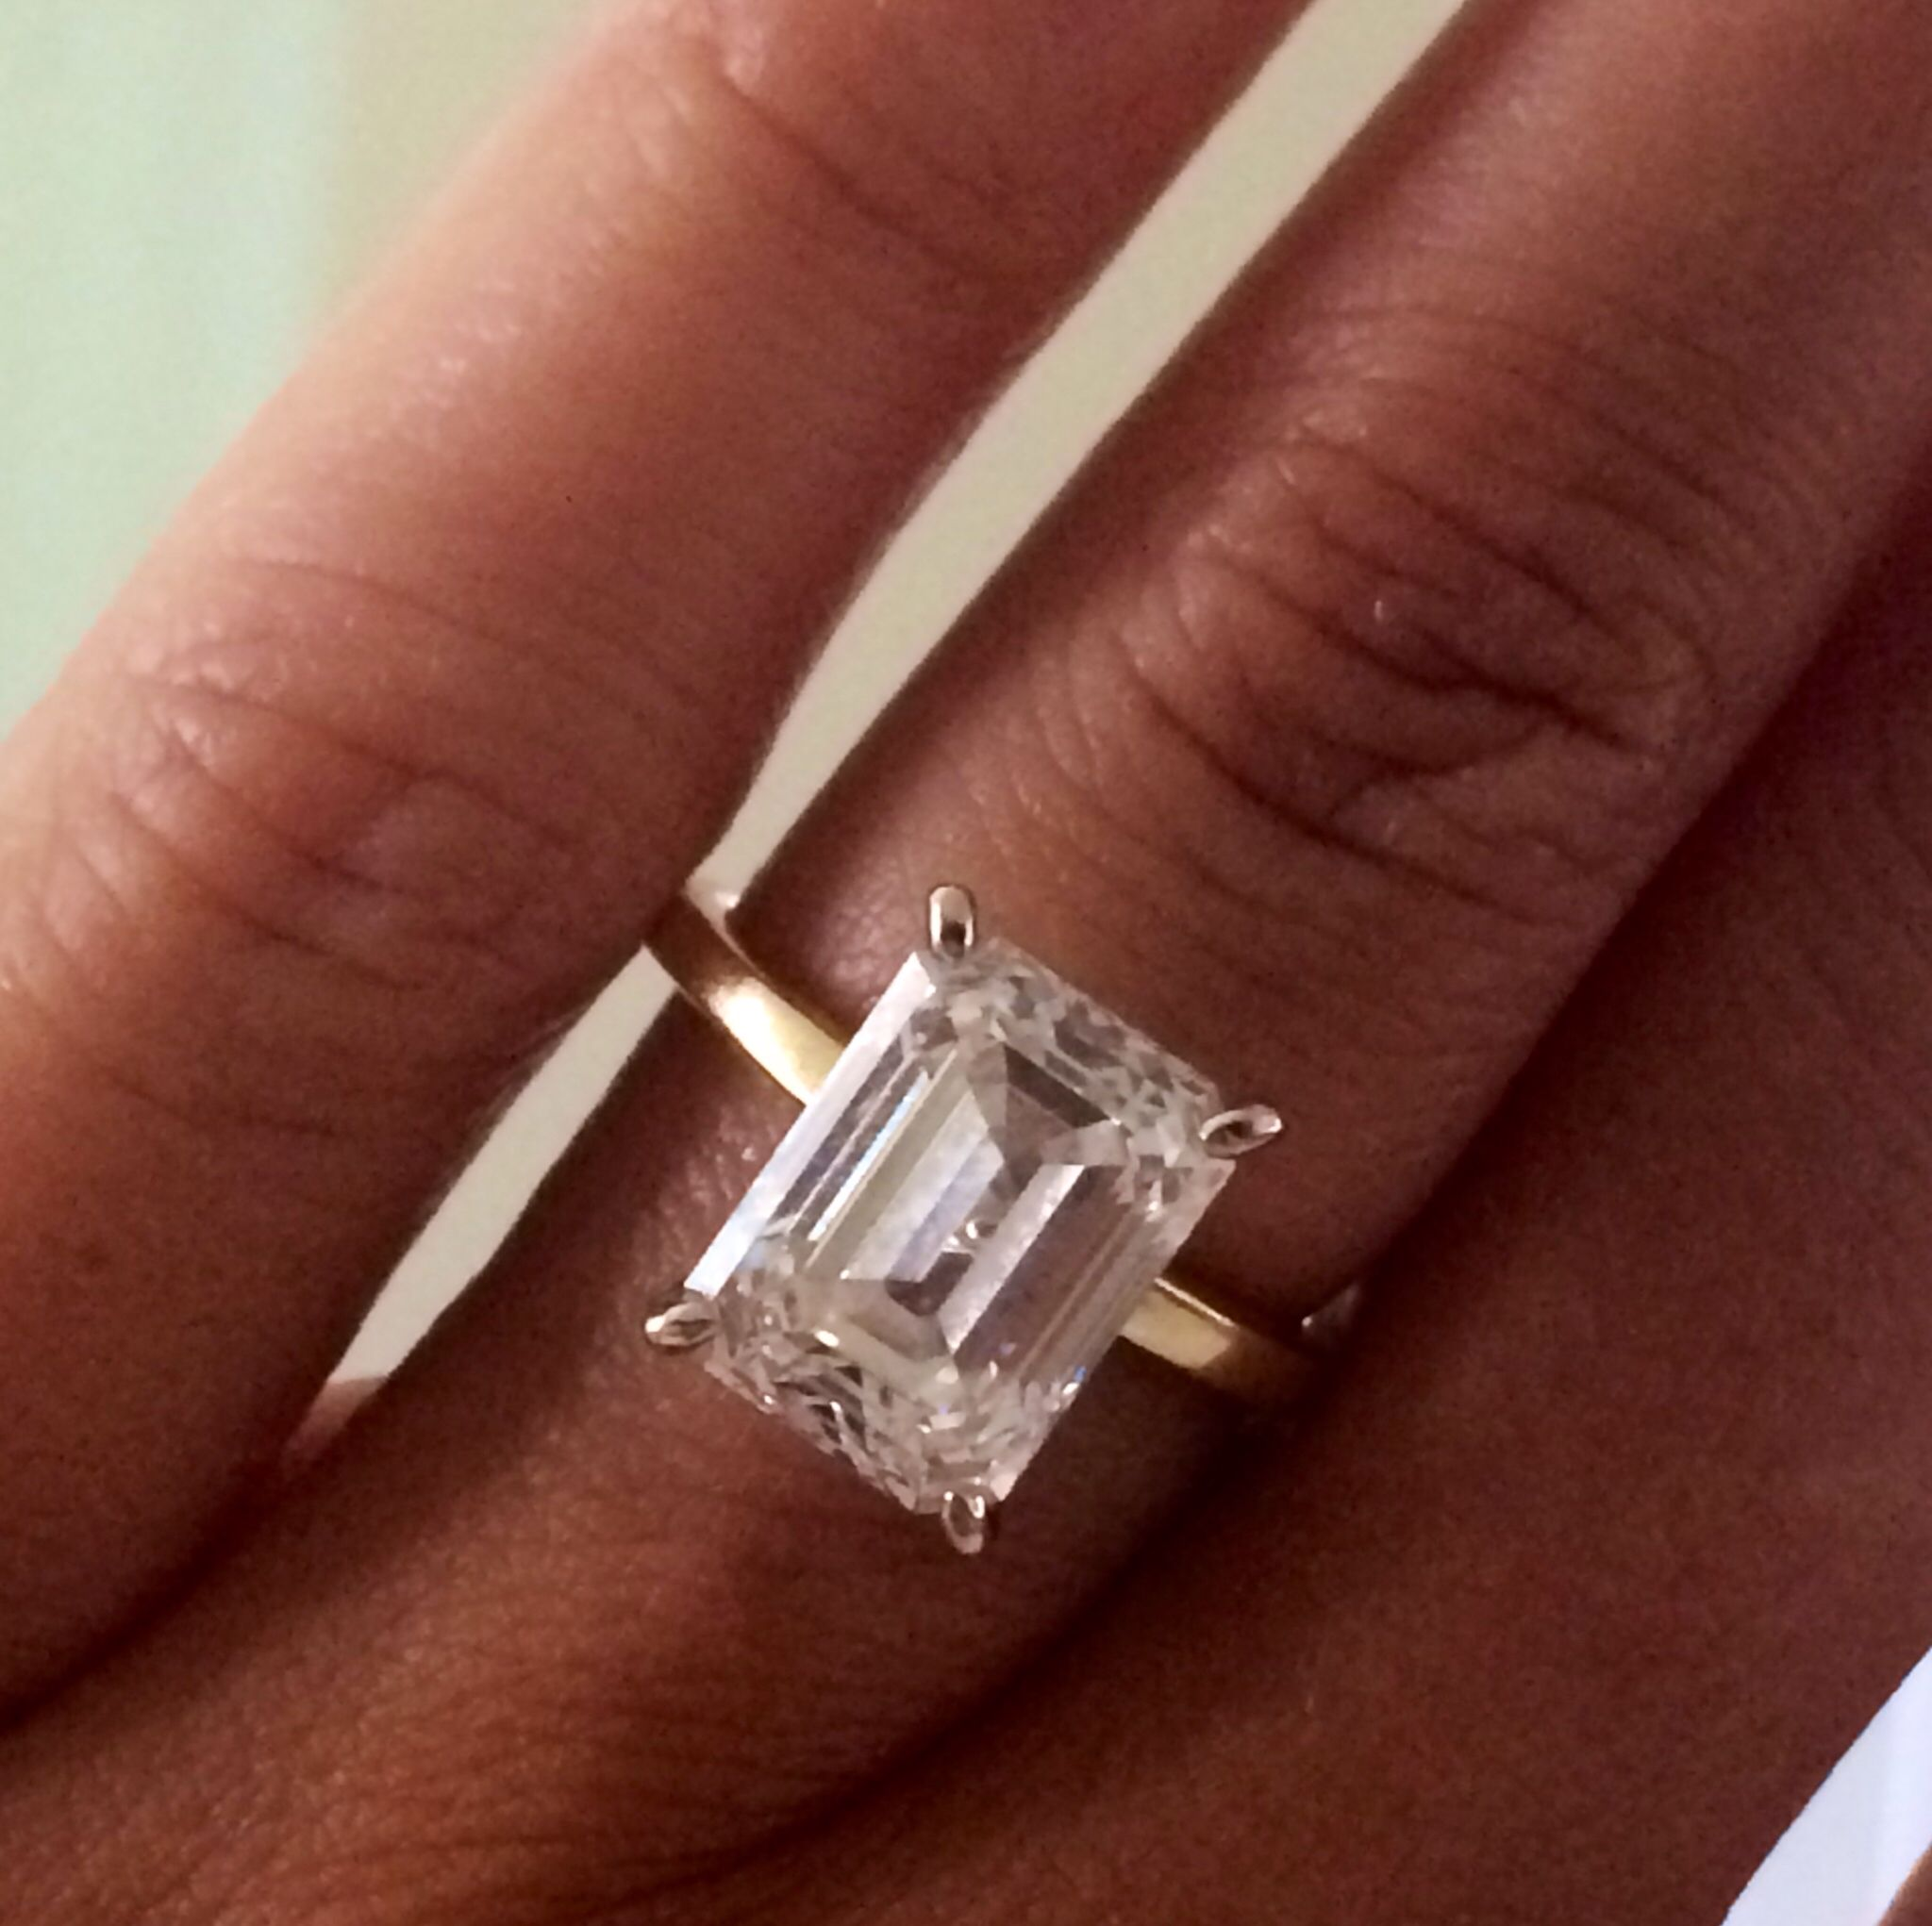 giant wedding ring 4ct or whatever giant rectangle diamond emerald cut thin band this